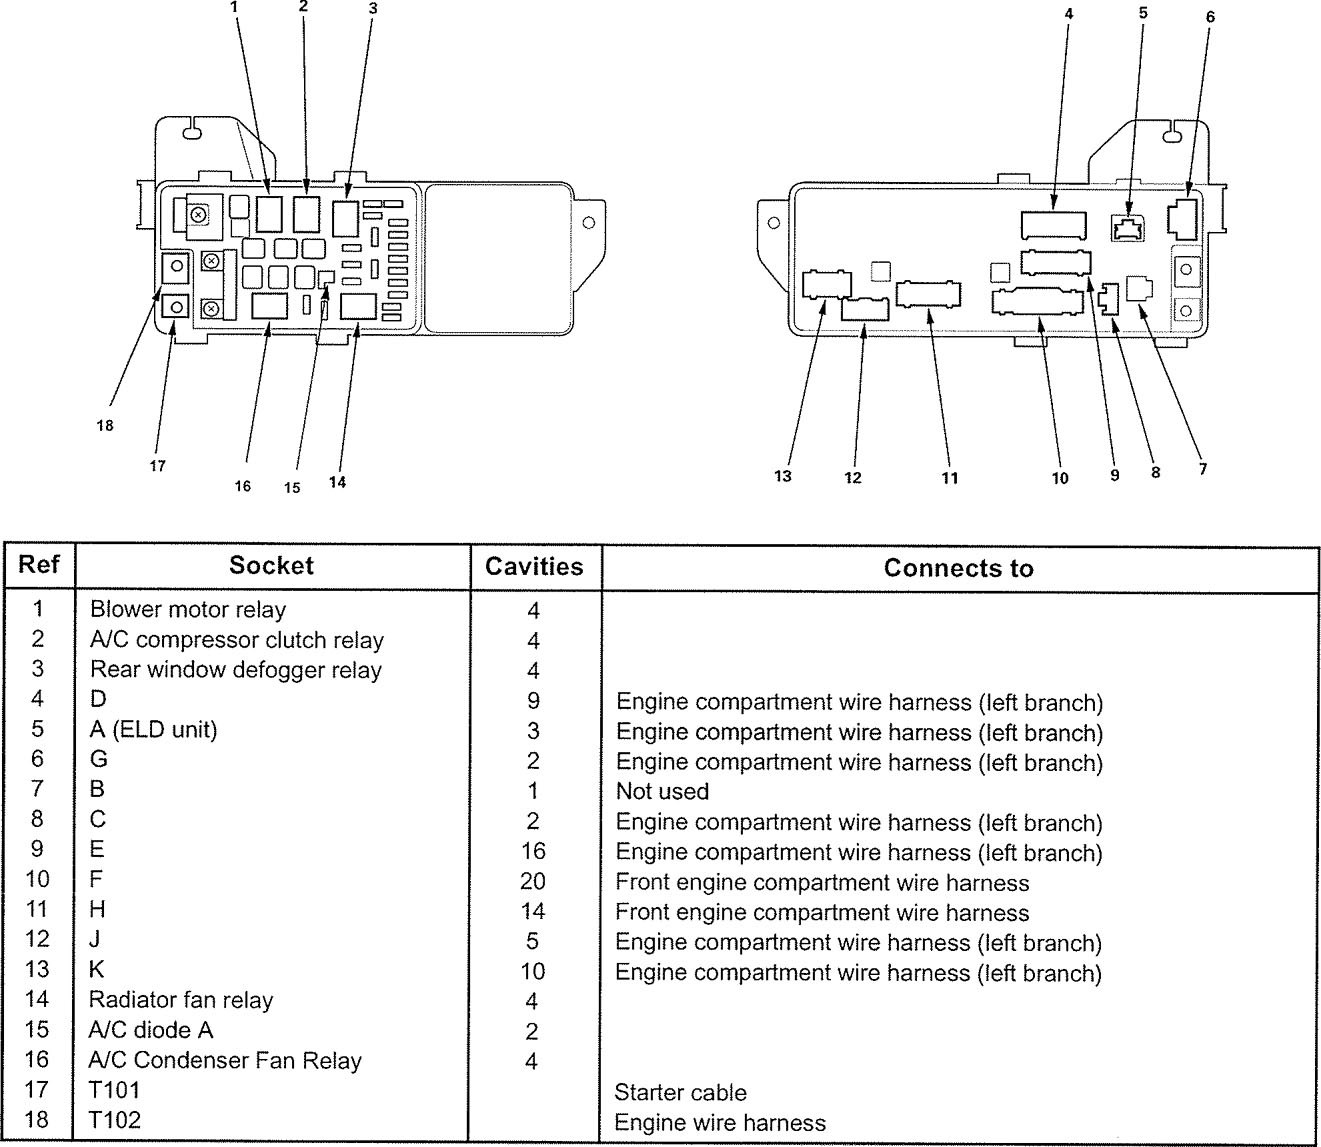 Acura Tl  2006  - Wiring Diagrams - Fuse Panel